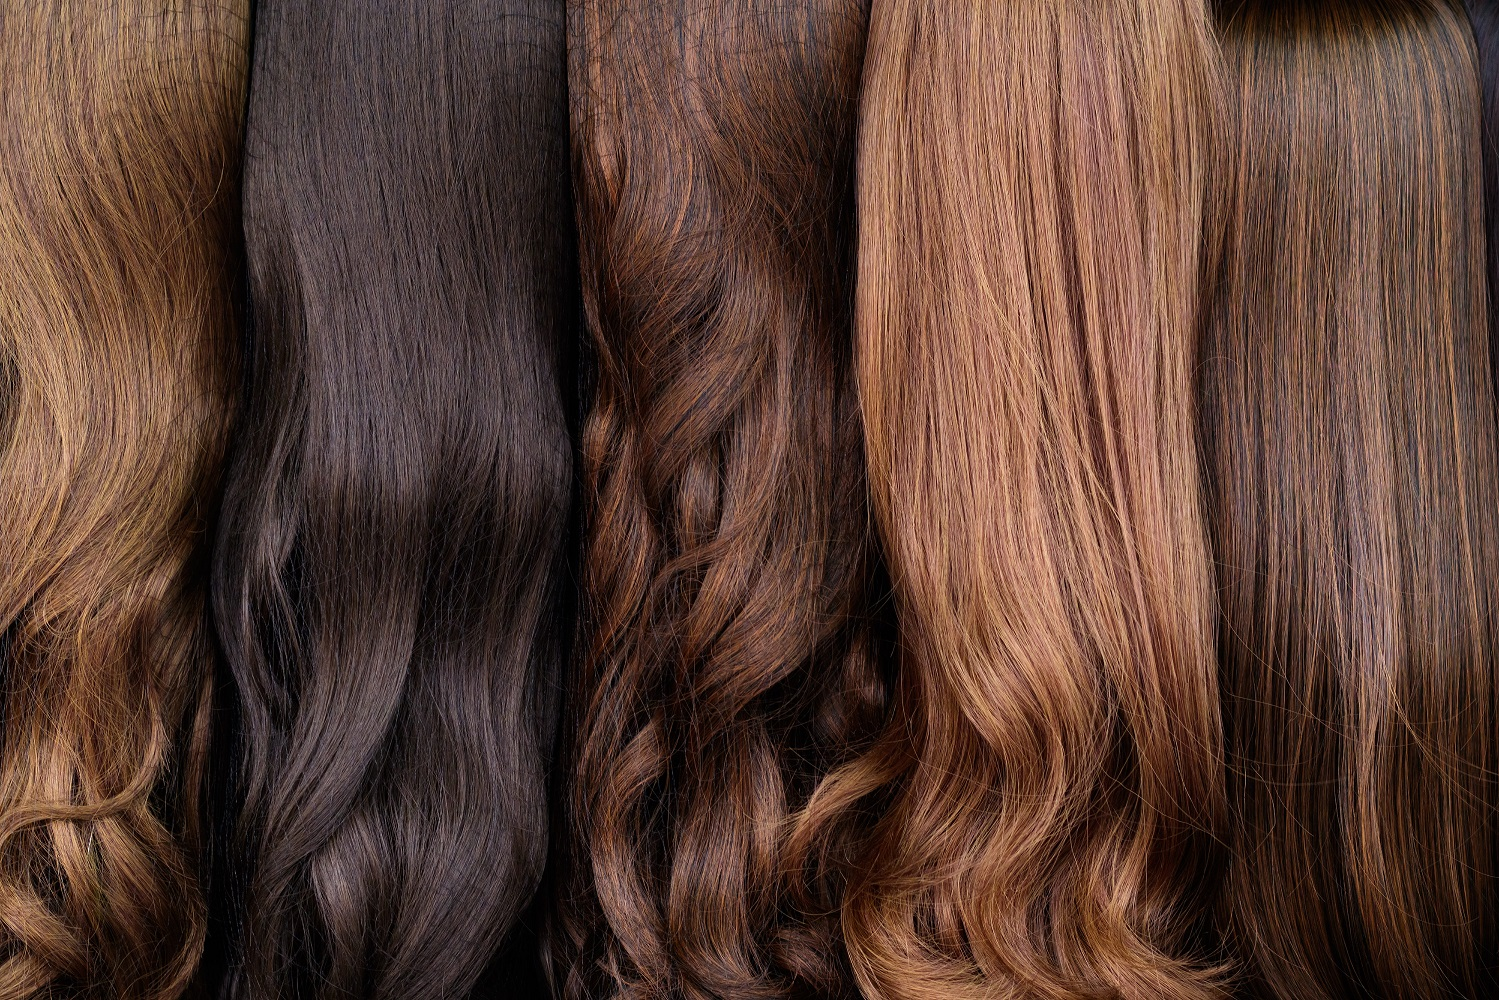 Finding Affordable Lace Wigs